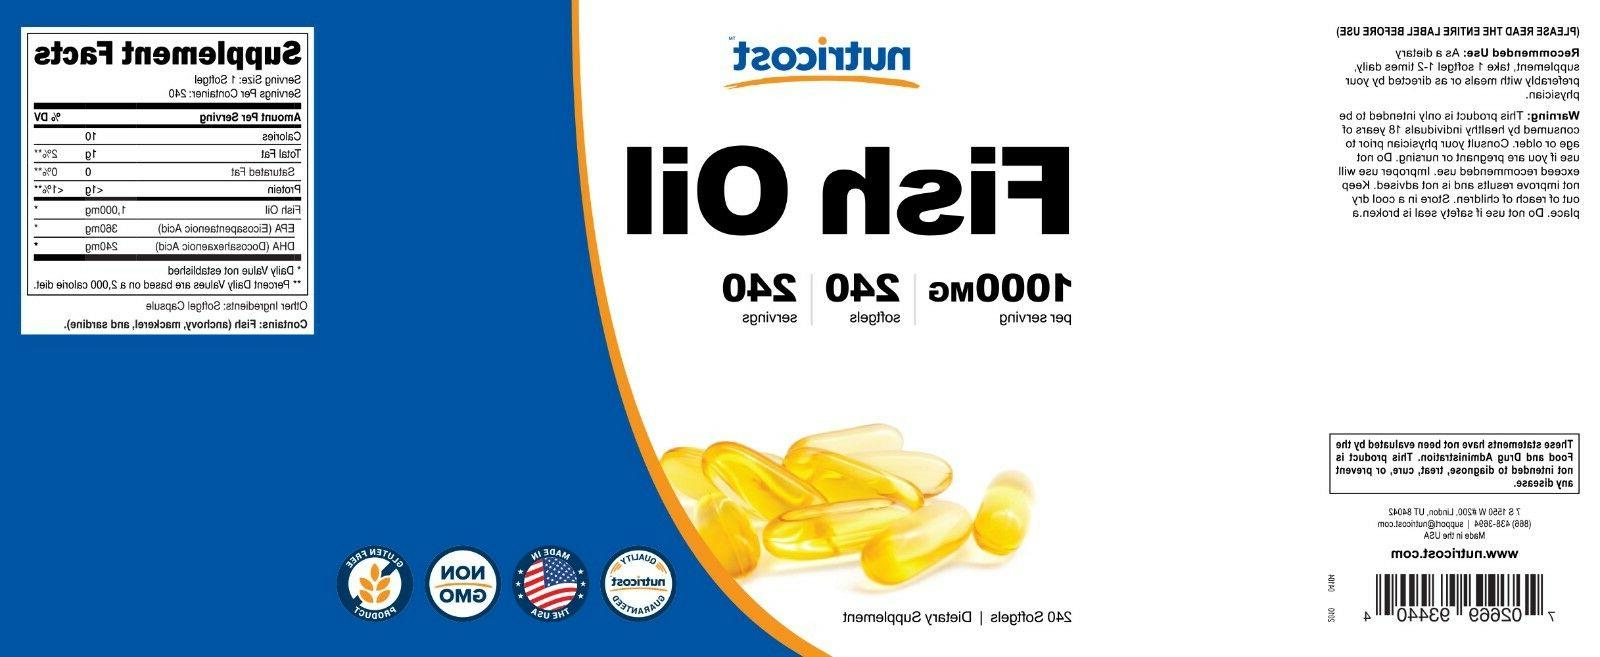 Nutricost High Quality Fish Oil 240 Softgels